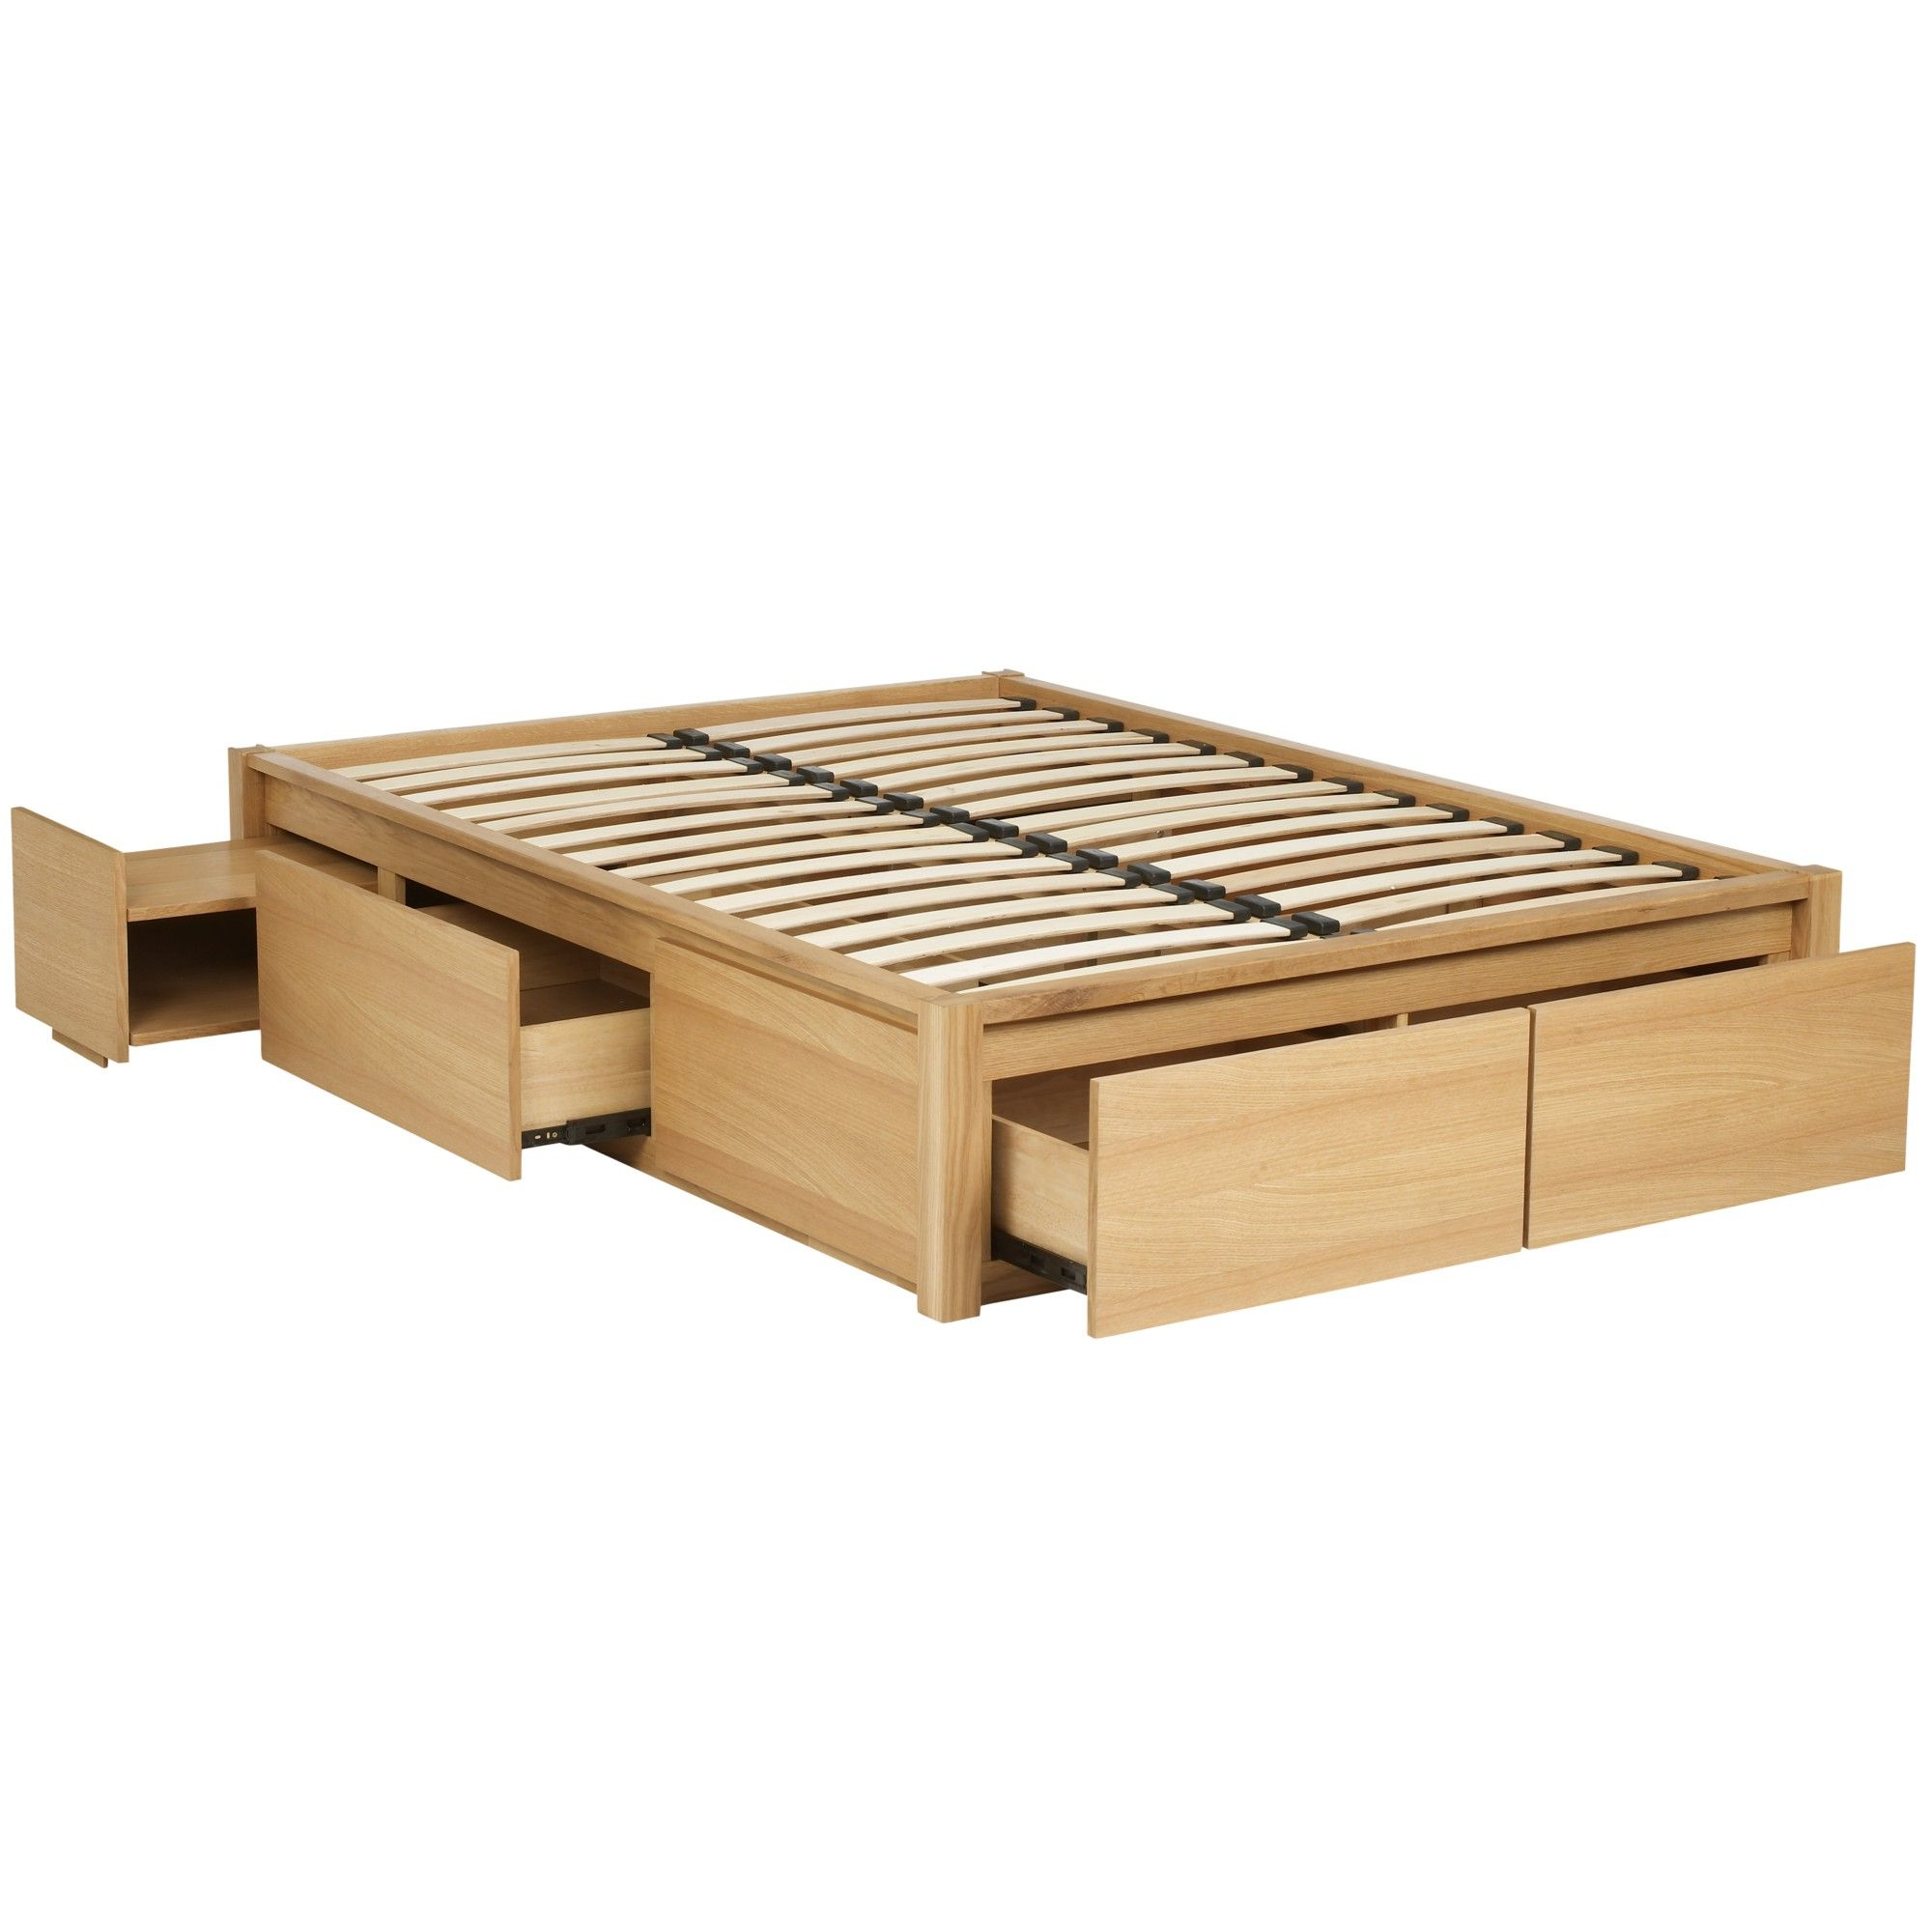 Platform bed with storage drawers. Picture only, no